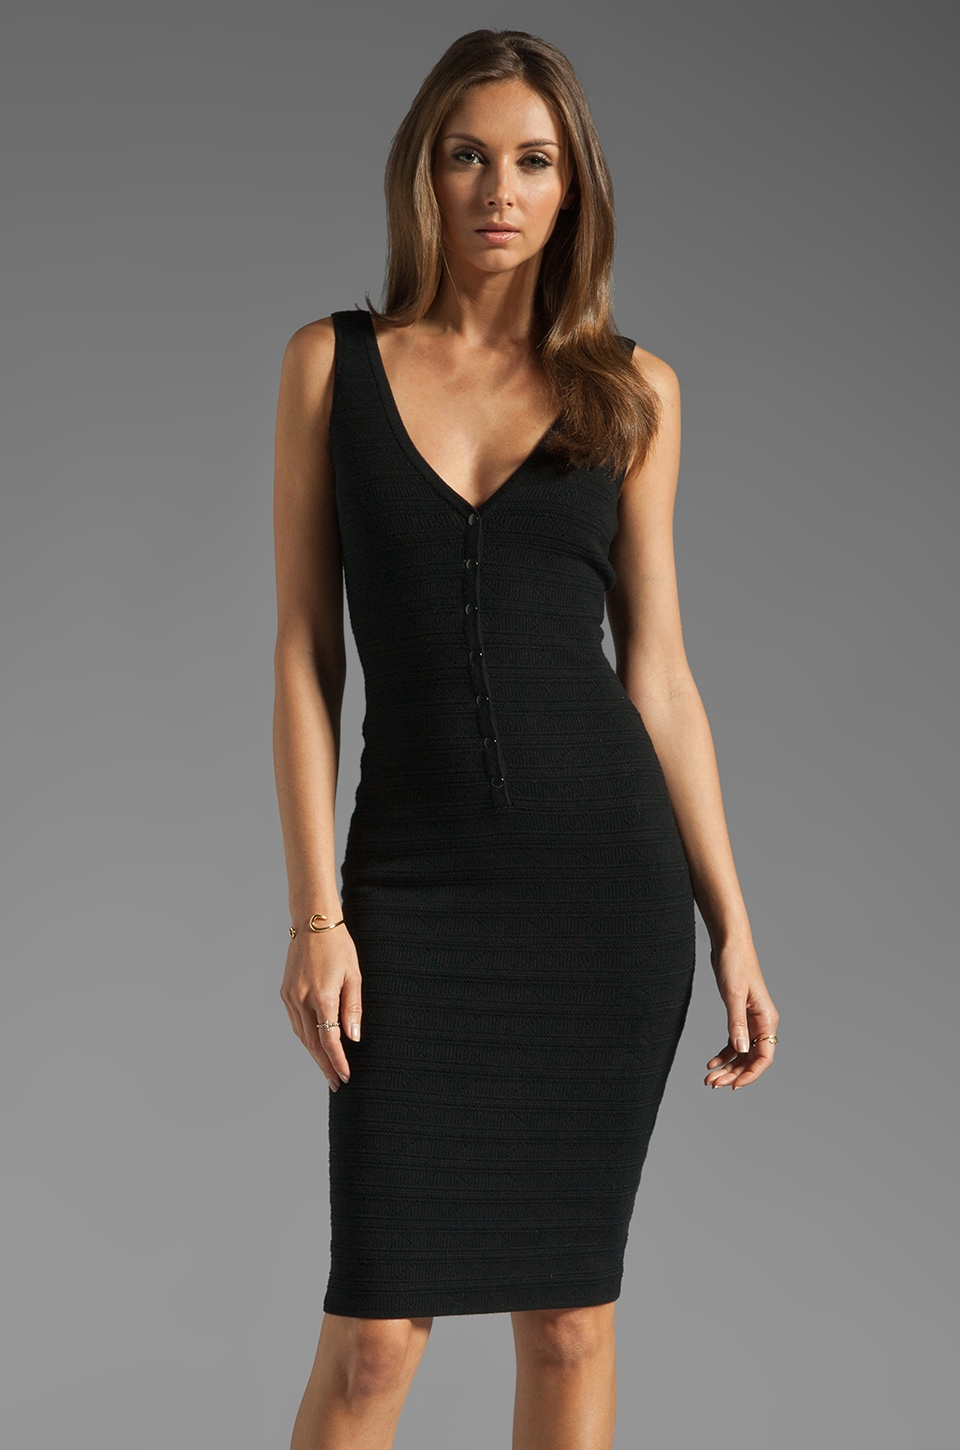 Catherine Malandrino Sleeveless Deep V Neck Dress in Noir